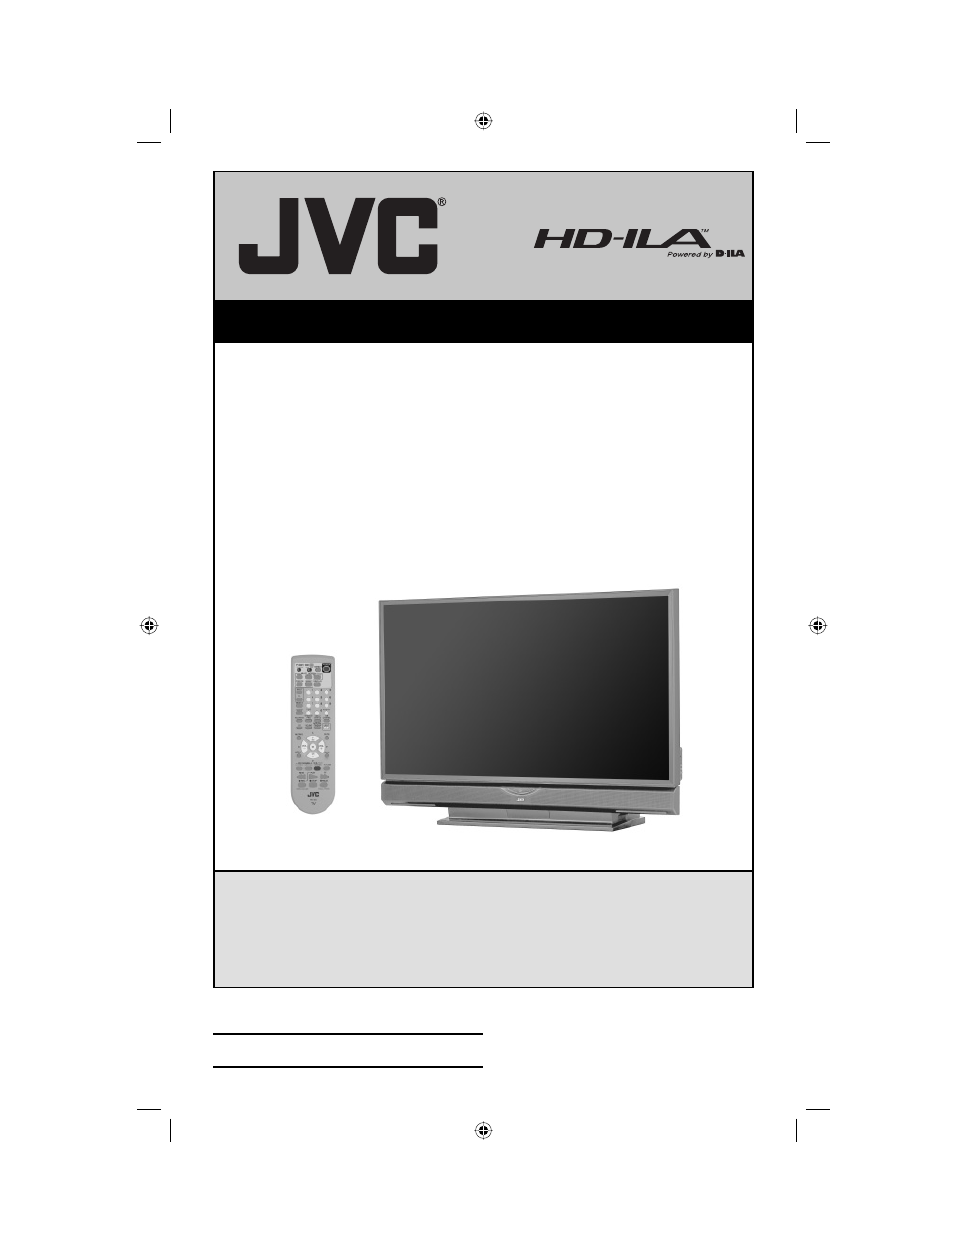 jvc hd 52fa97 user s manual free pdf download 88 pages rh manualagent com JVC Audio JVC AVCHD Everio